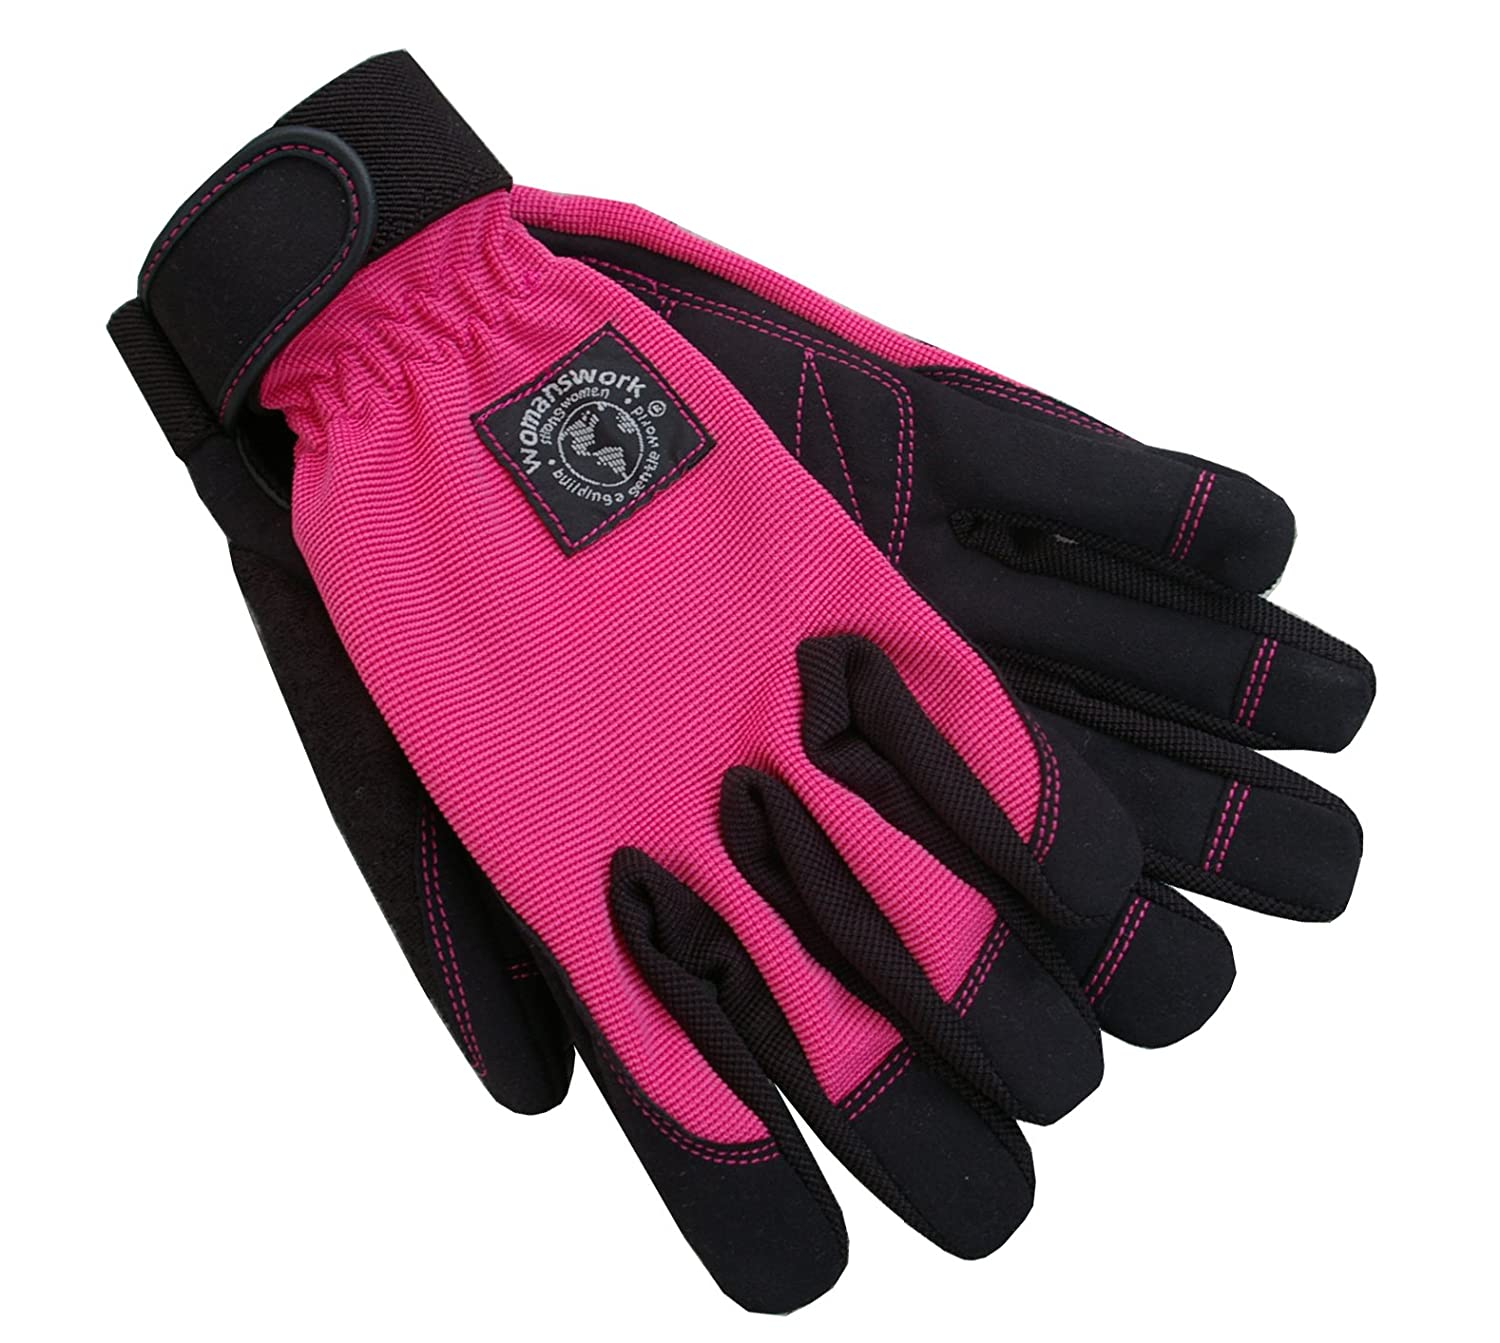 Womanswork 502LStretch Gardening Glove with Micro Suede Palm, Hot Pink, Large